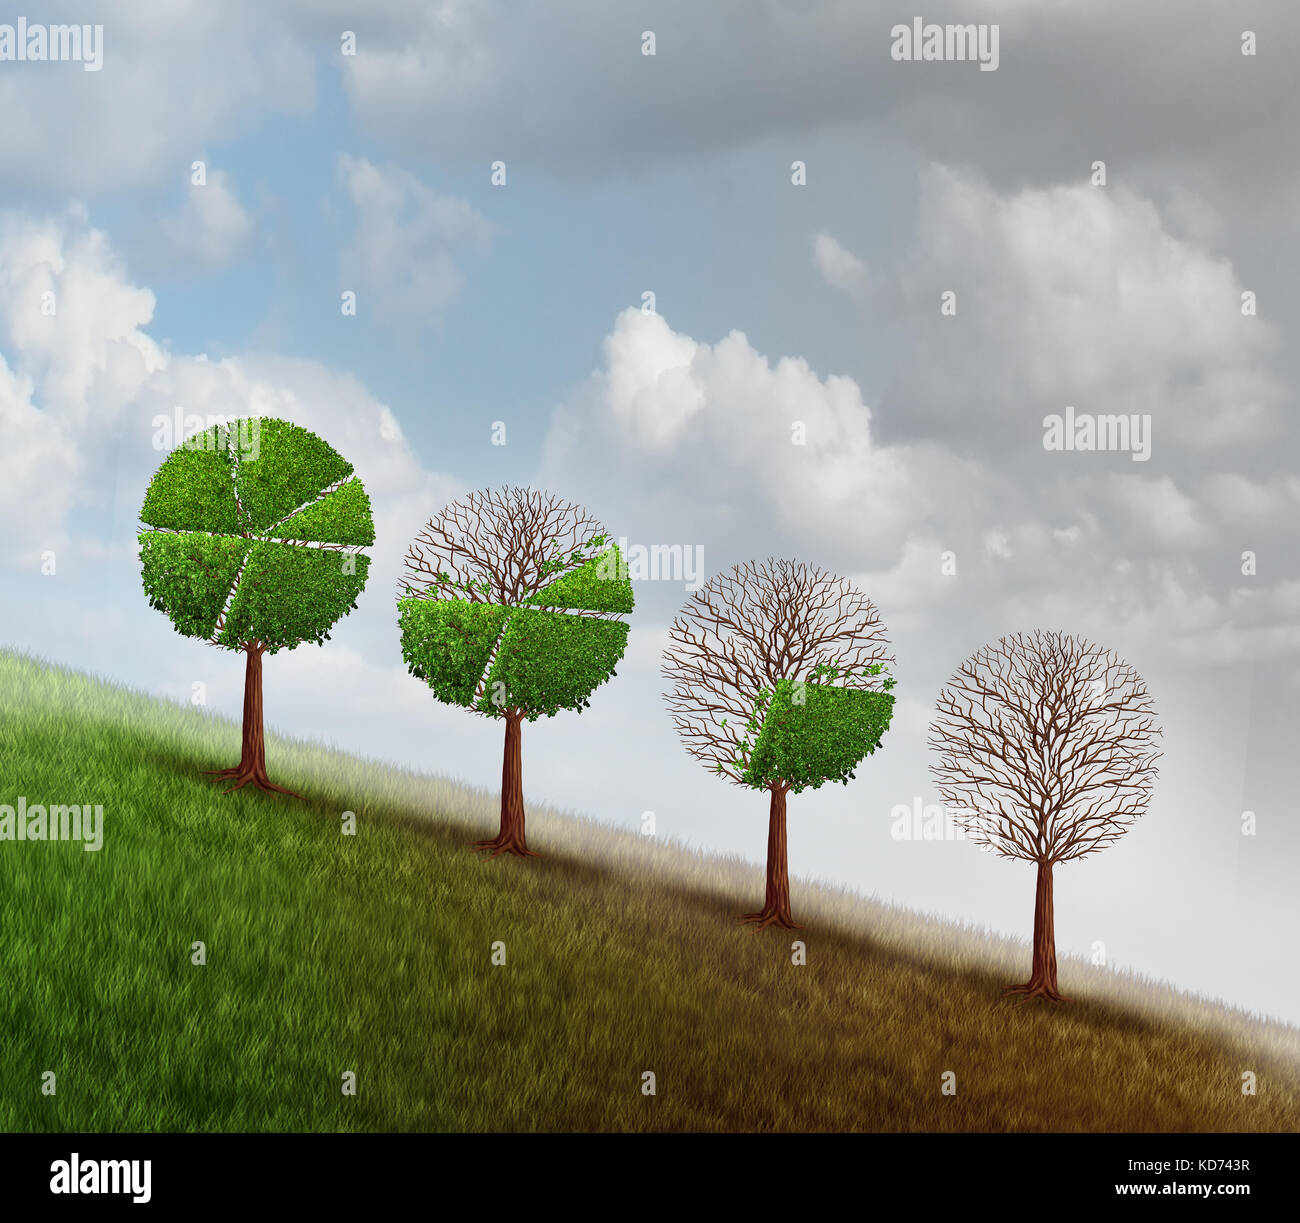 Economic decline and business recession change as a group of trees shaped as a financial diagram chart losing leaves - Stock Image